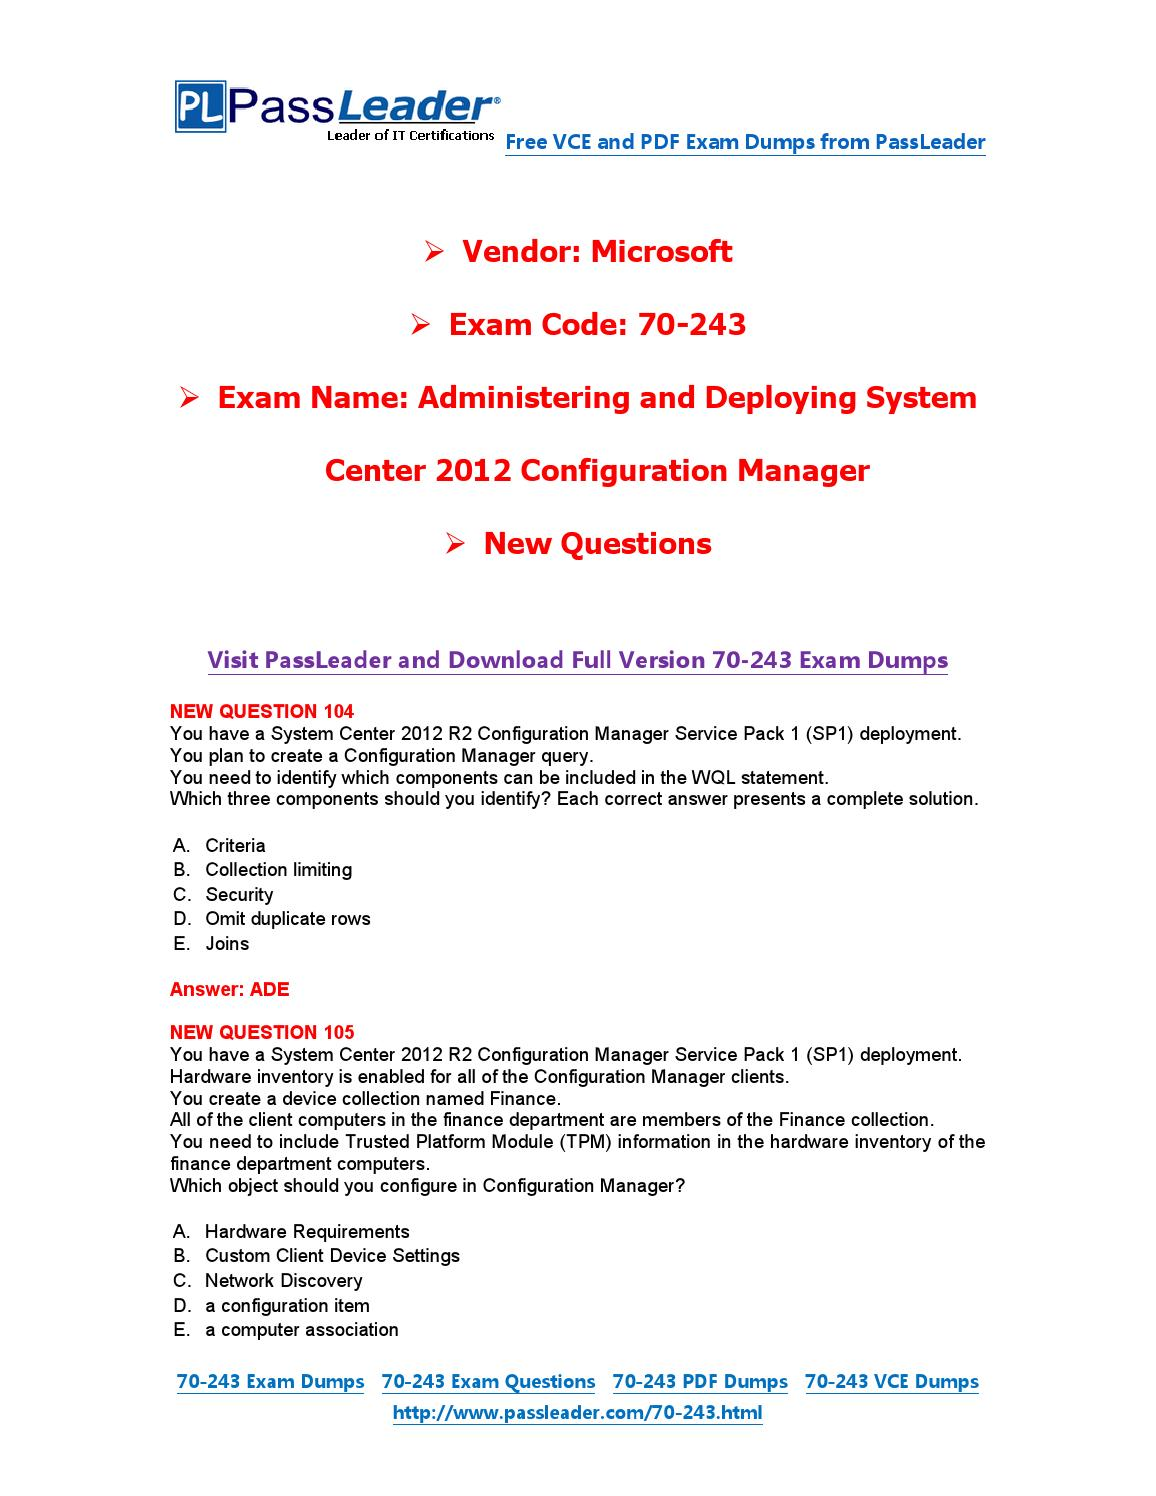 Feb-2016] New 70-243 Exam Dumps For Free (VCE and PDF) by